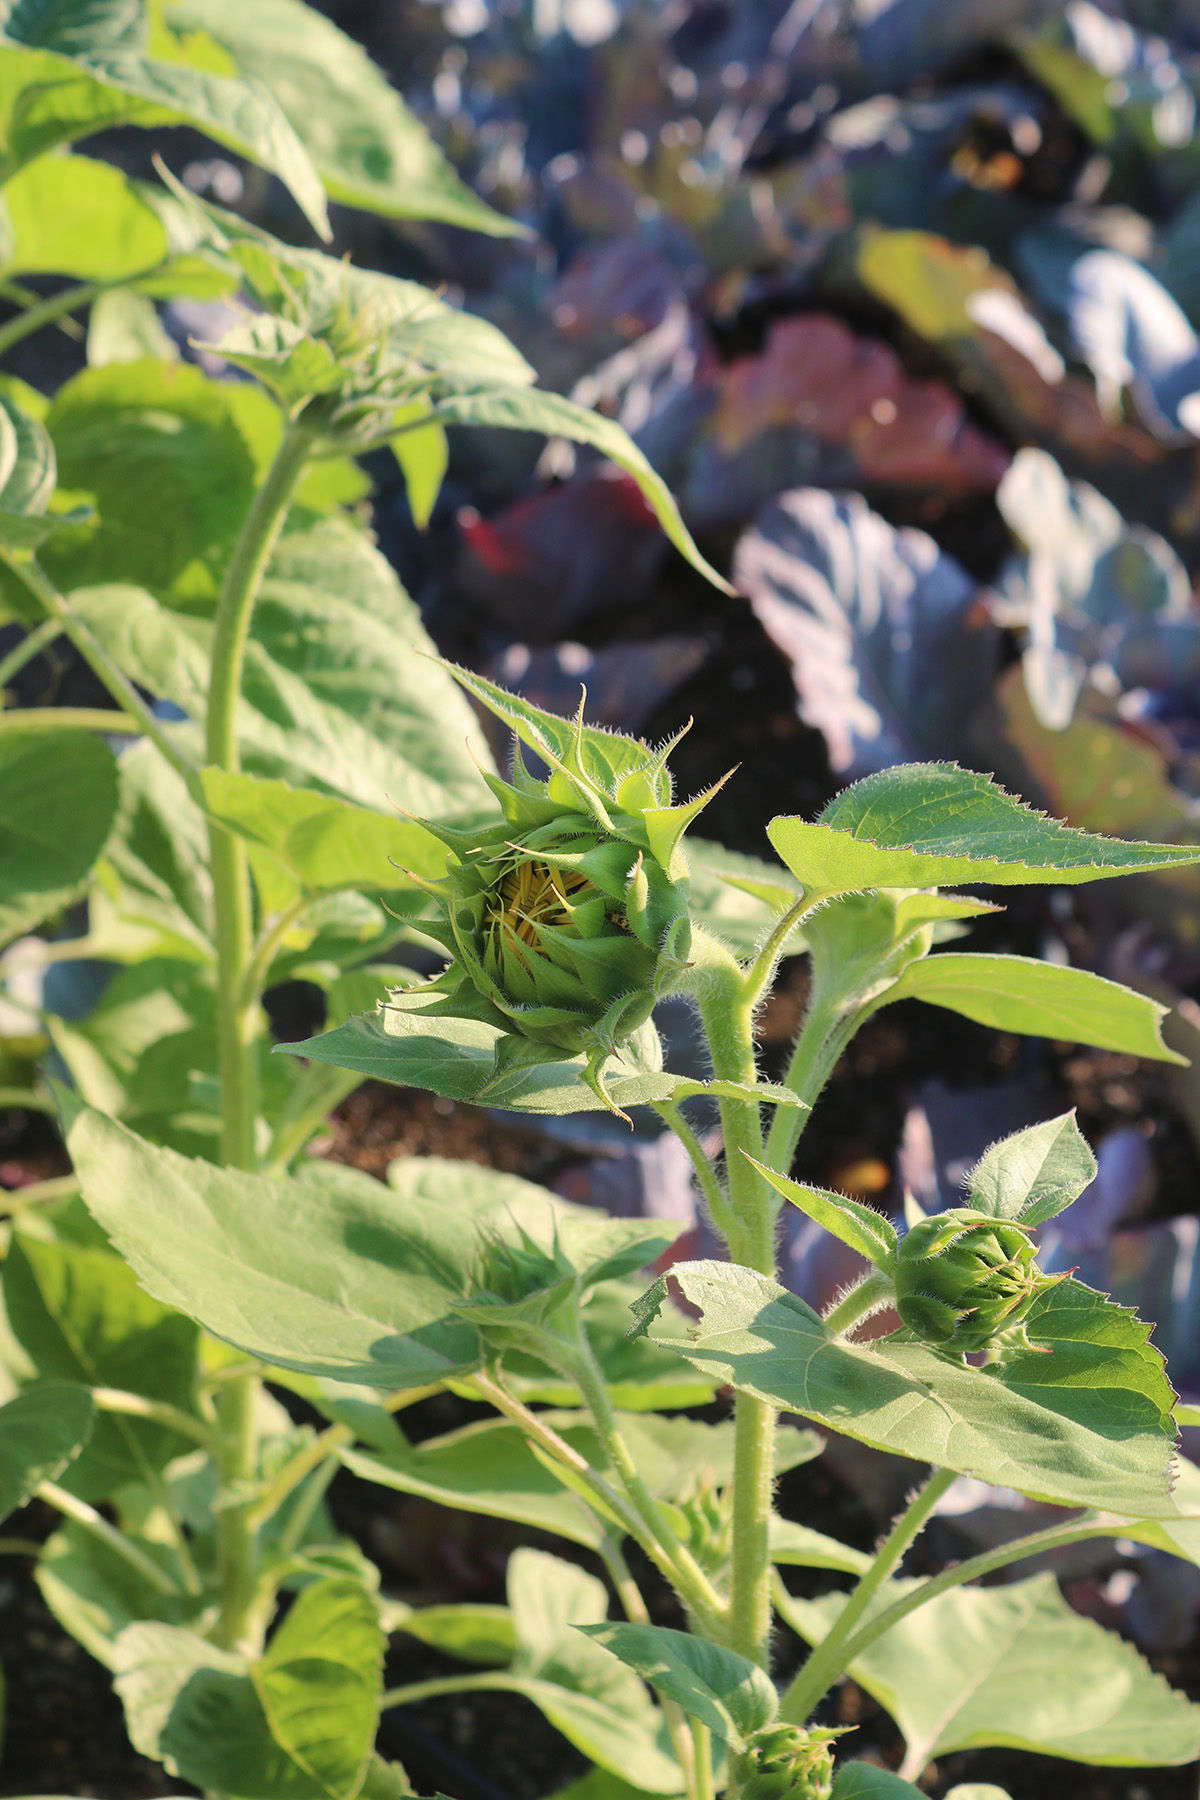 In the vegetable garden beds, brassicas share space with sunflowers (planted in part to feed snacking migratory birds, while some studies have shown that they might be a good trap crop).